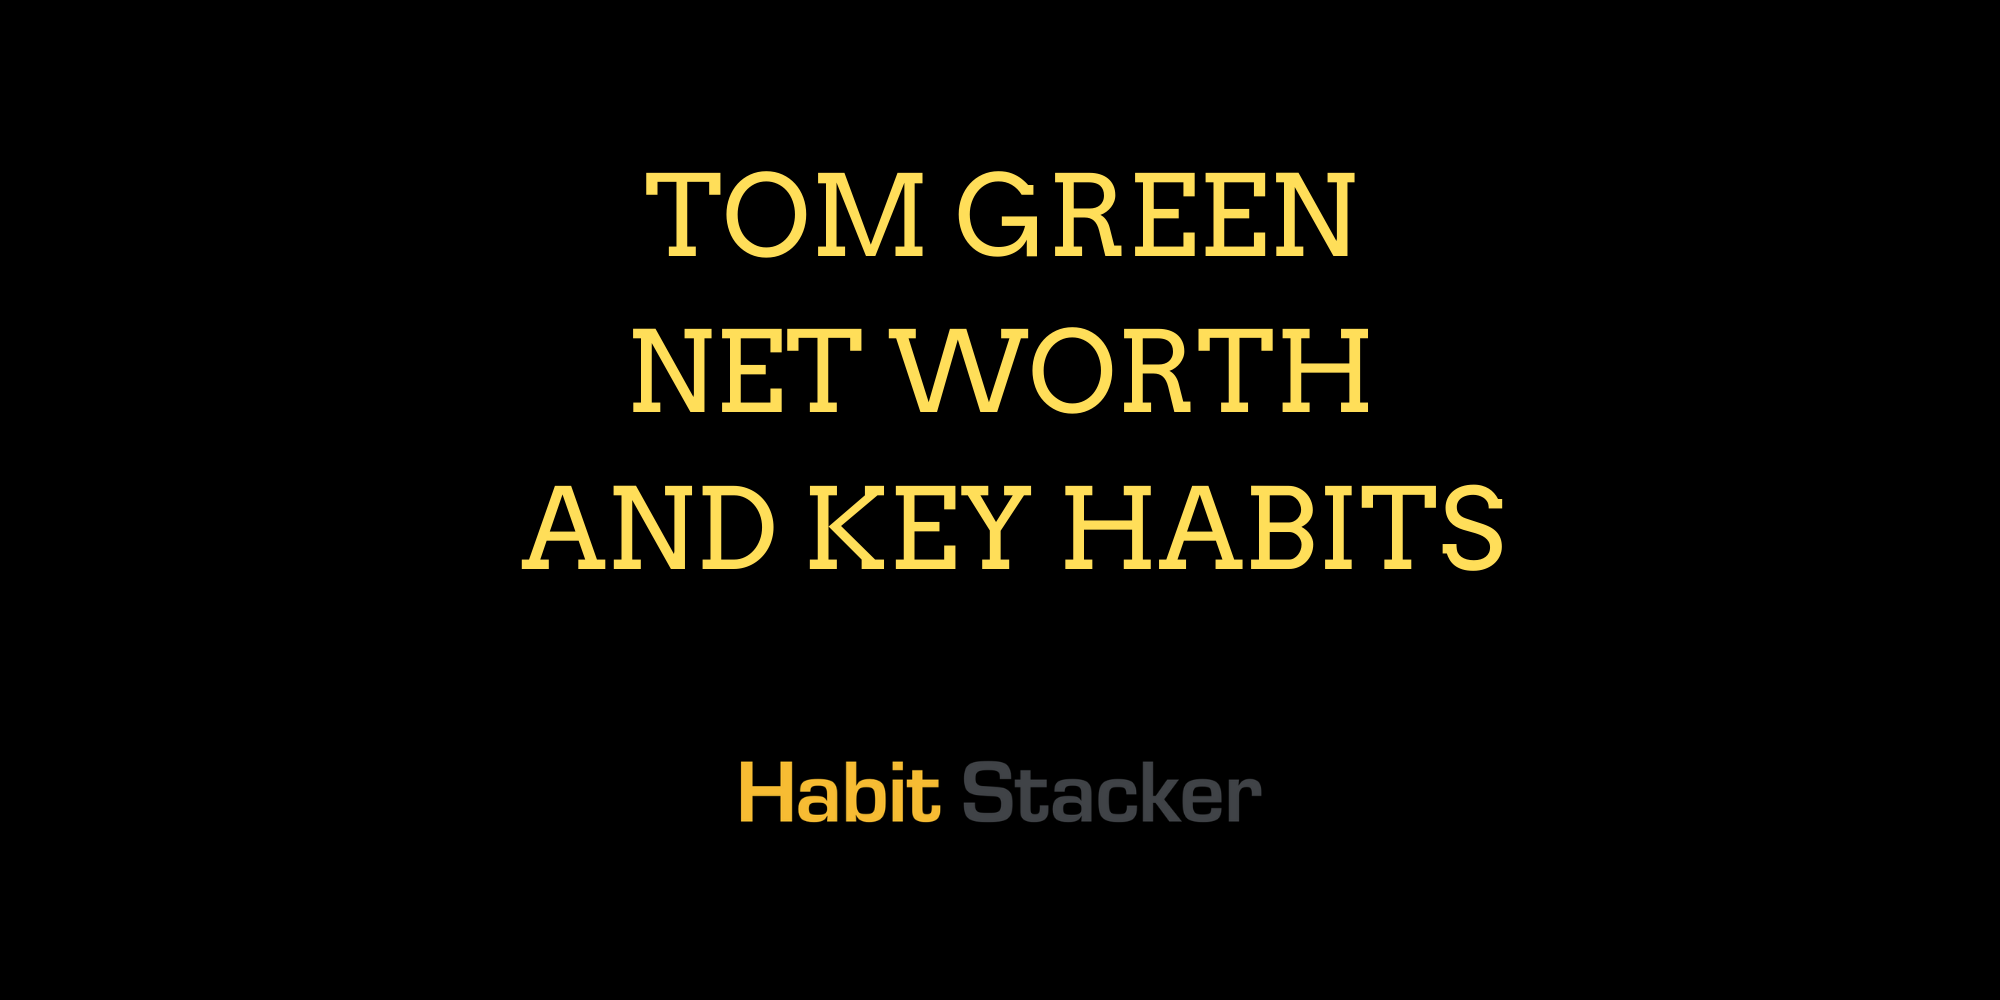 Tom Green Net Worth and Key Habits